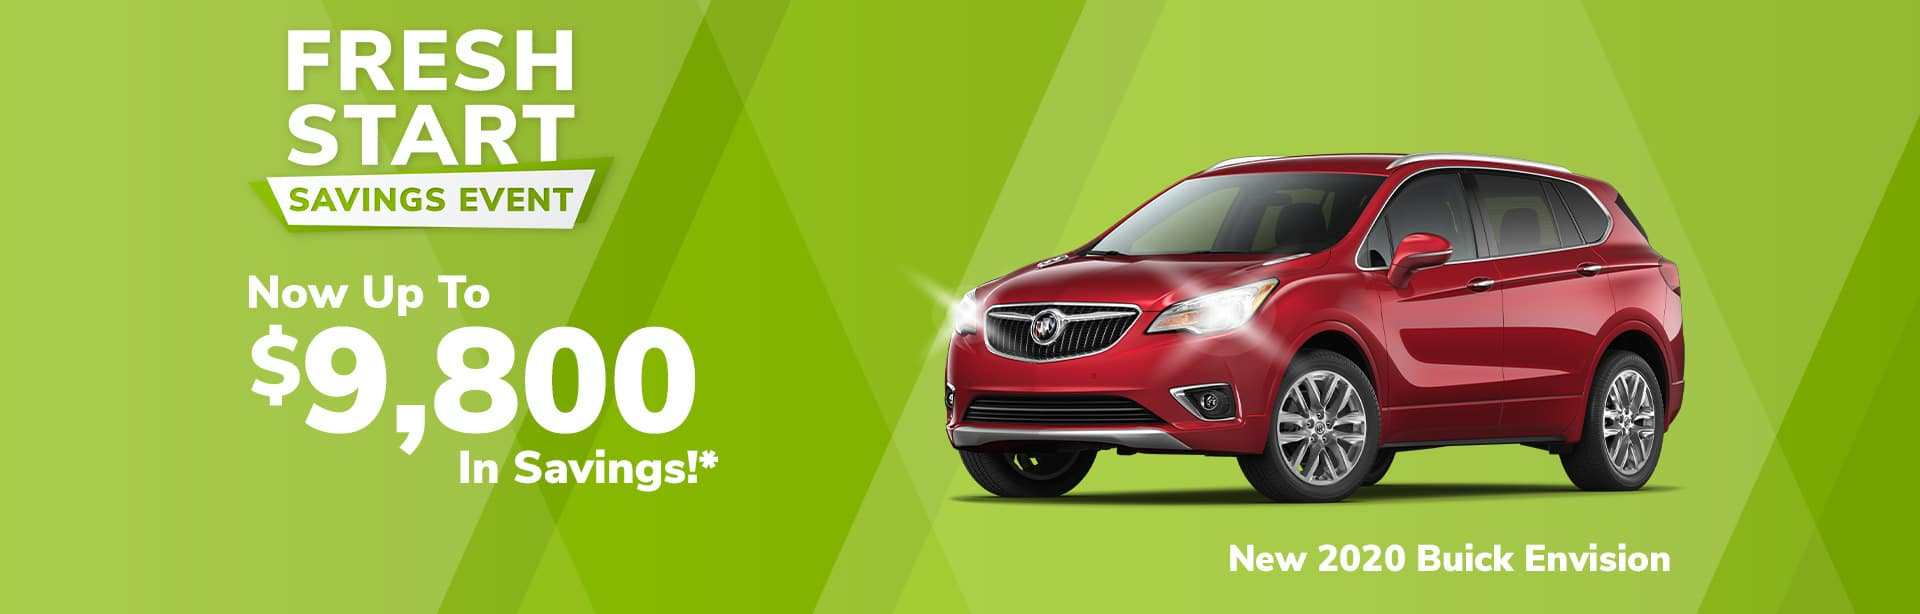 Rebate offer on a new 2020 Buick Envision near Brazil Indiana